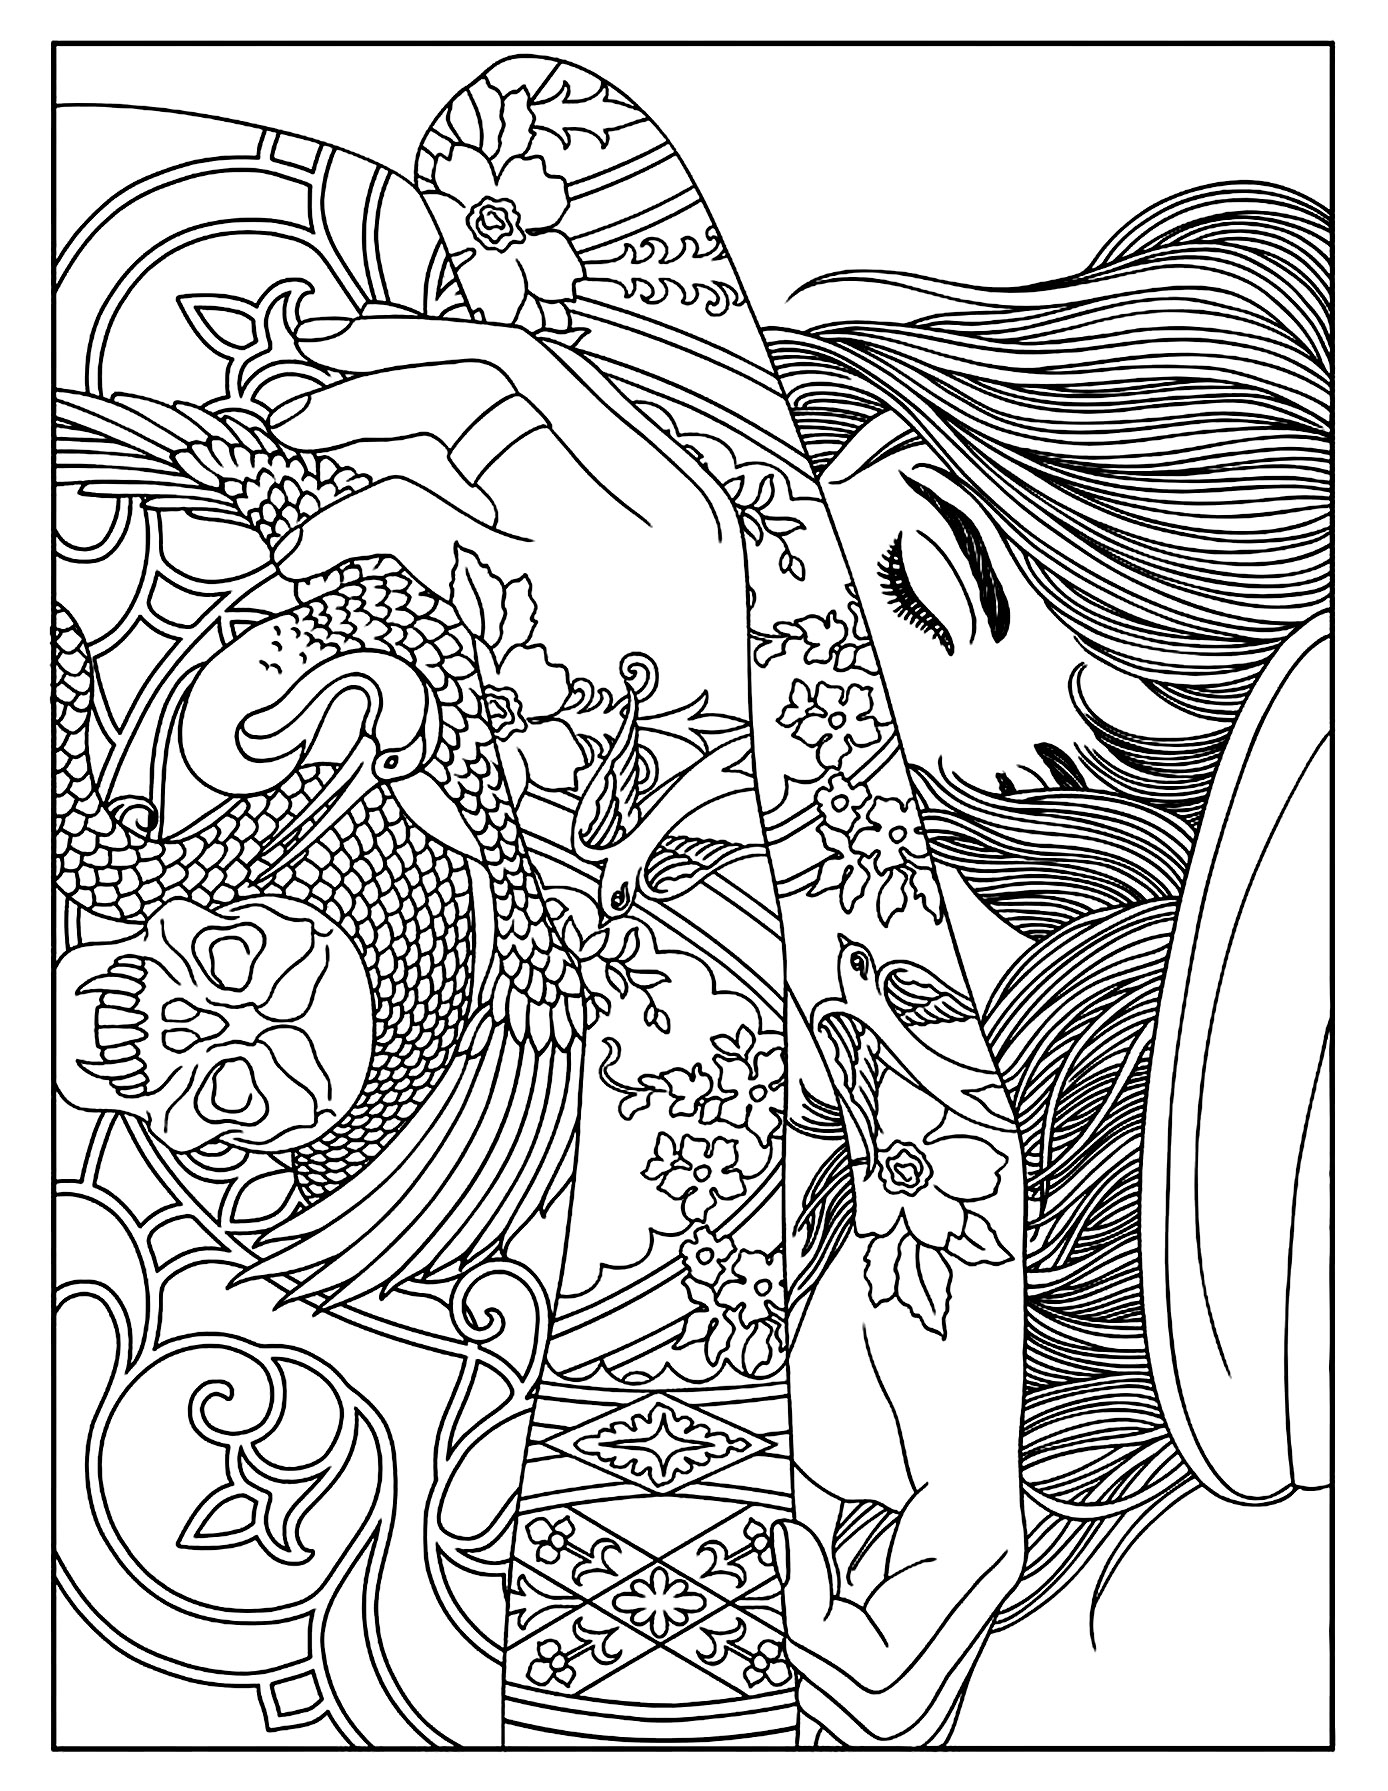 Coloring pages woman - Coloring Woman Tattoos Free To Print